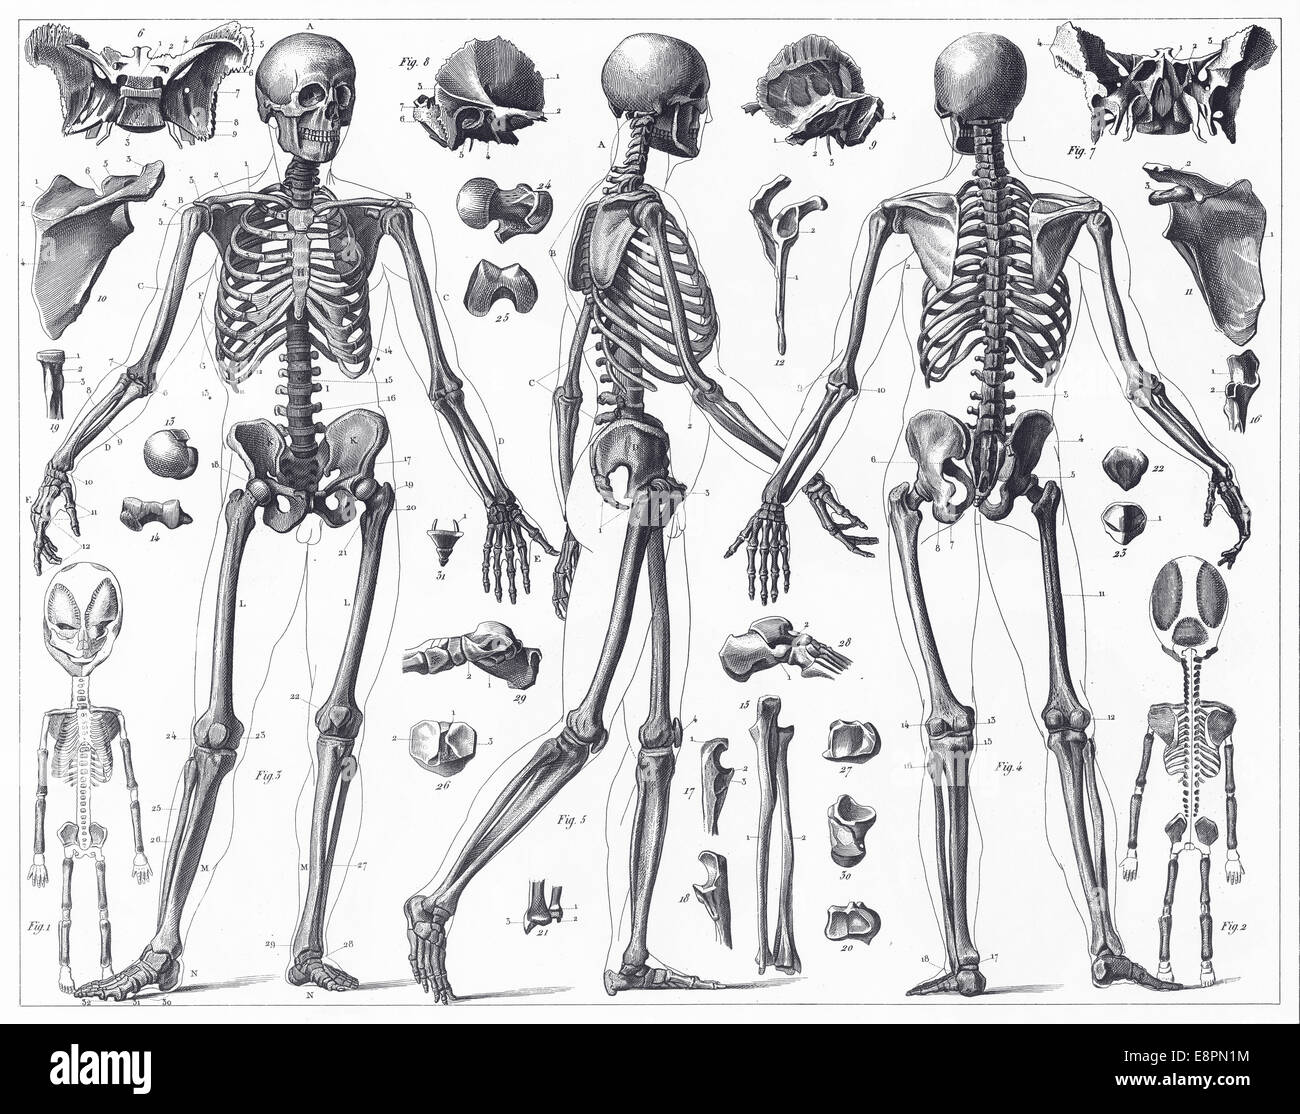 engraved illustrations of anatomy of the bones from iconographic, Skeleton